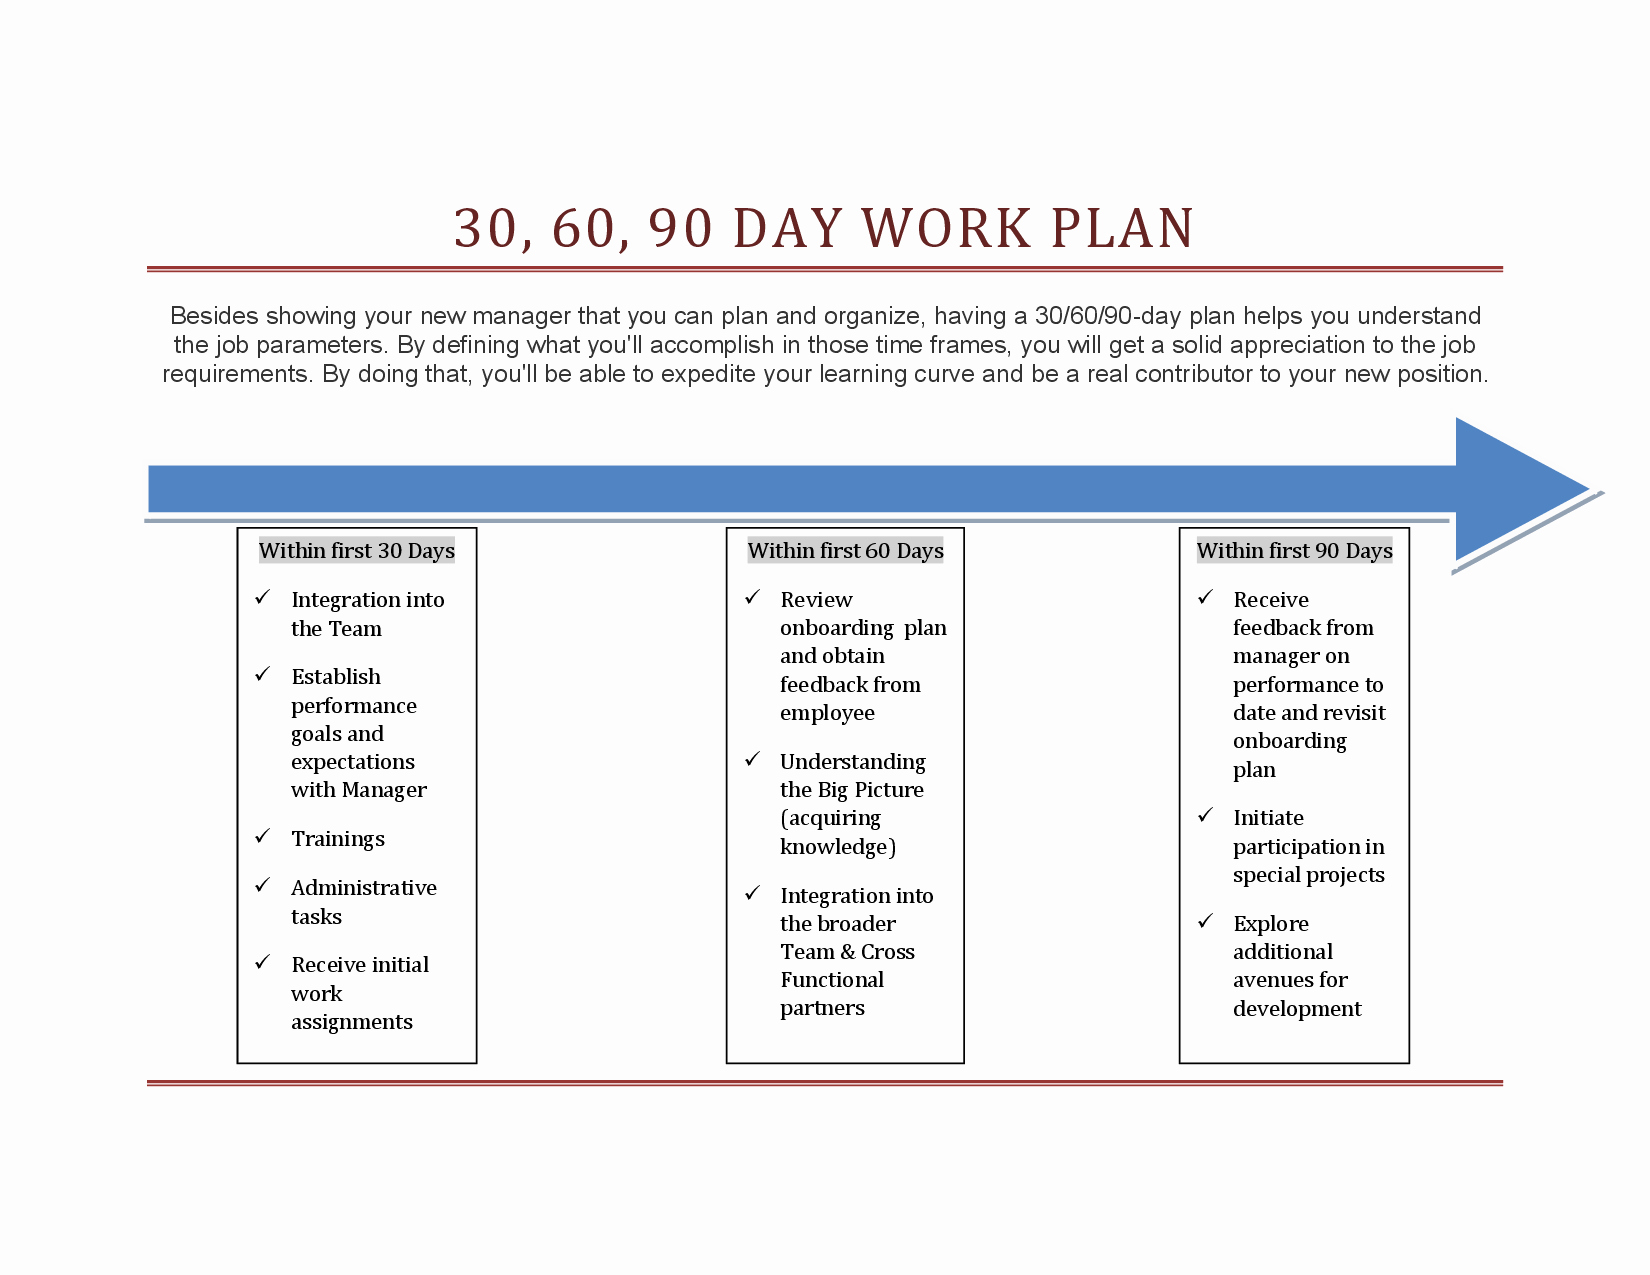 90 Day Plan Template Beautiful 30 60 90 Day Work Plan Templatepdf by Tinammckenna